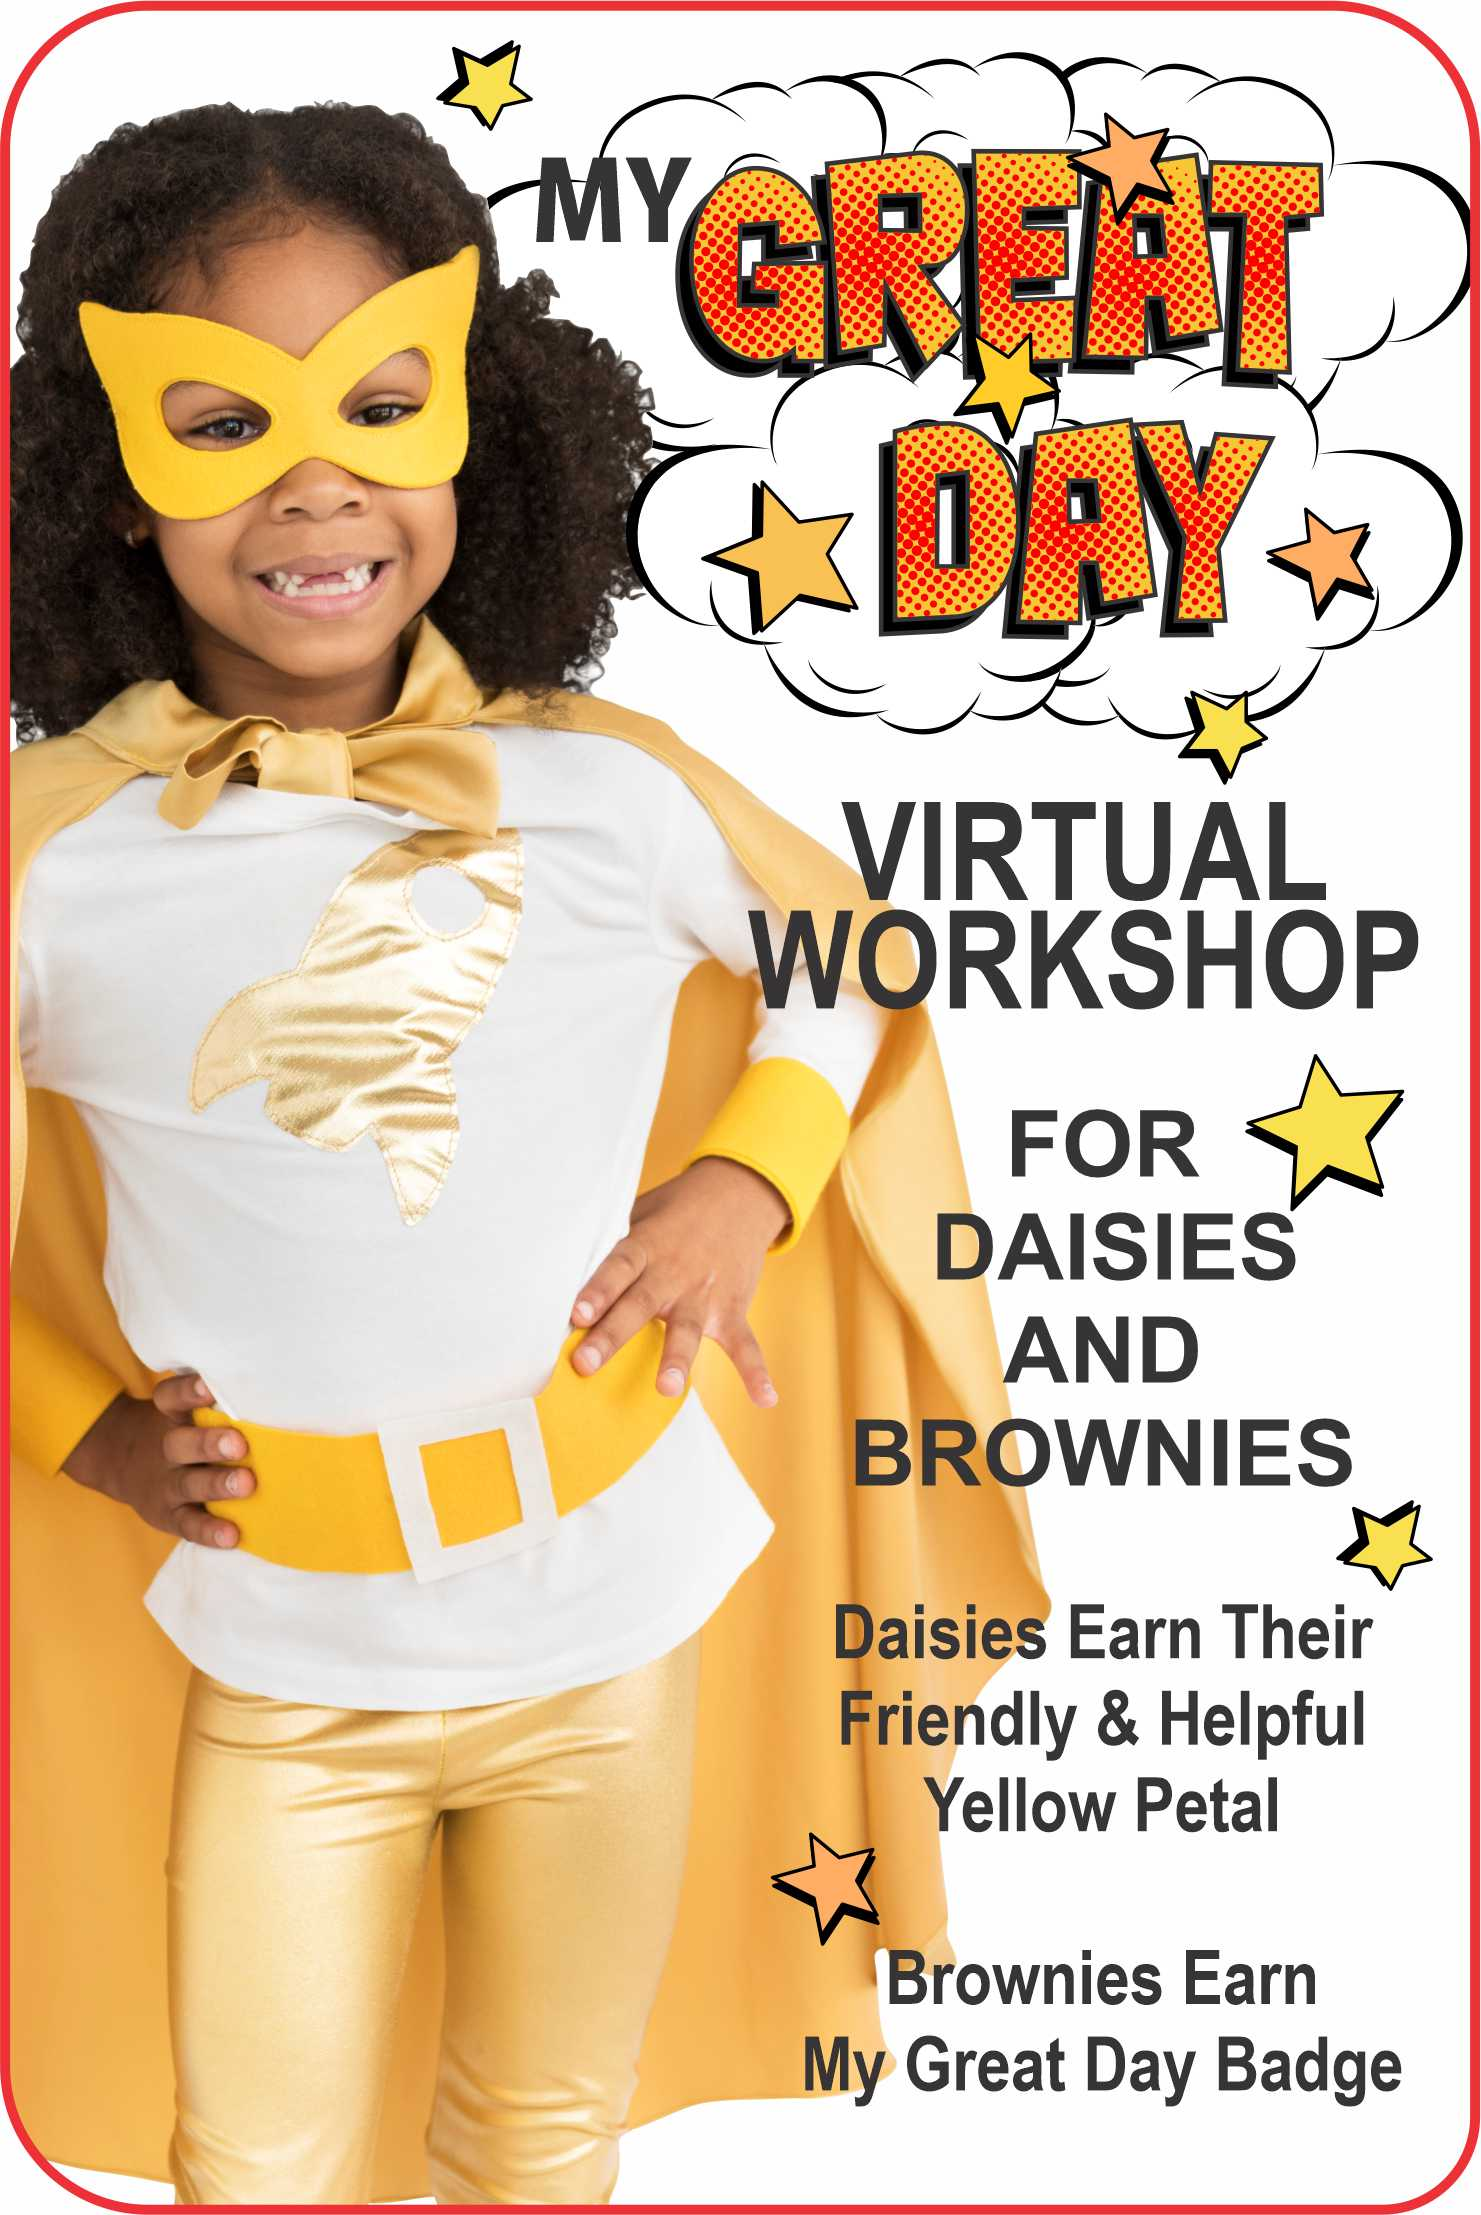 Join us for a fun and interactive, virtual workshop to earn the My Great Day and Daisies Yellow Petal! #makingfriends #mygreatday #virtualworkshop #onlineclass #girlscouts #gsonline #daisies #girlscoutdaisy #daisypetal #girlscoutbrownies #gsbrownie #gspatches via @gsleader411